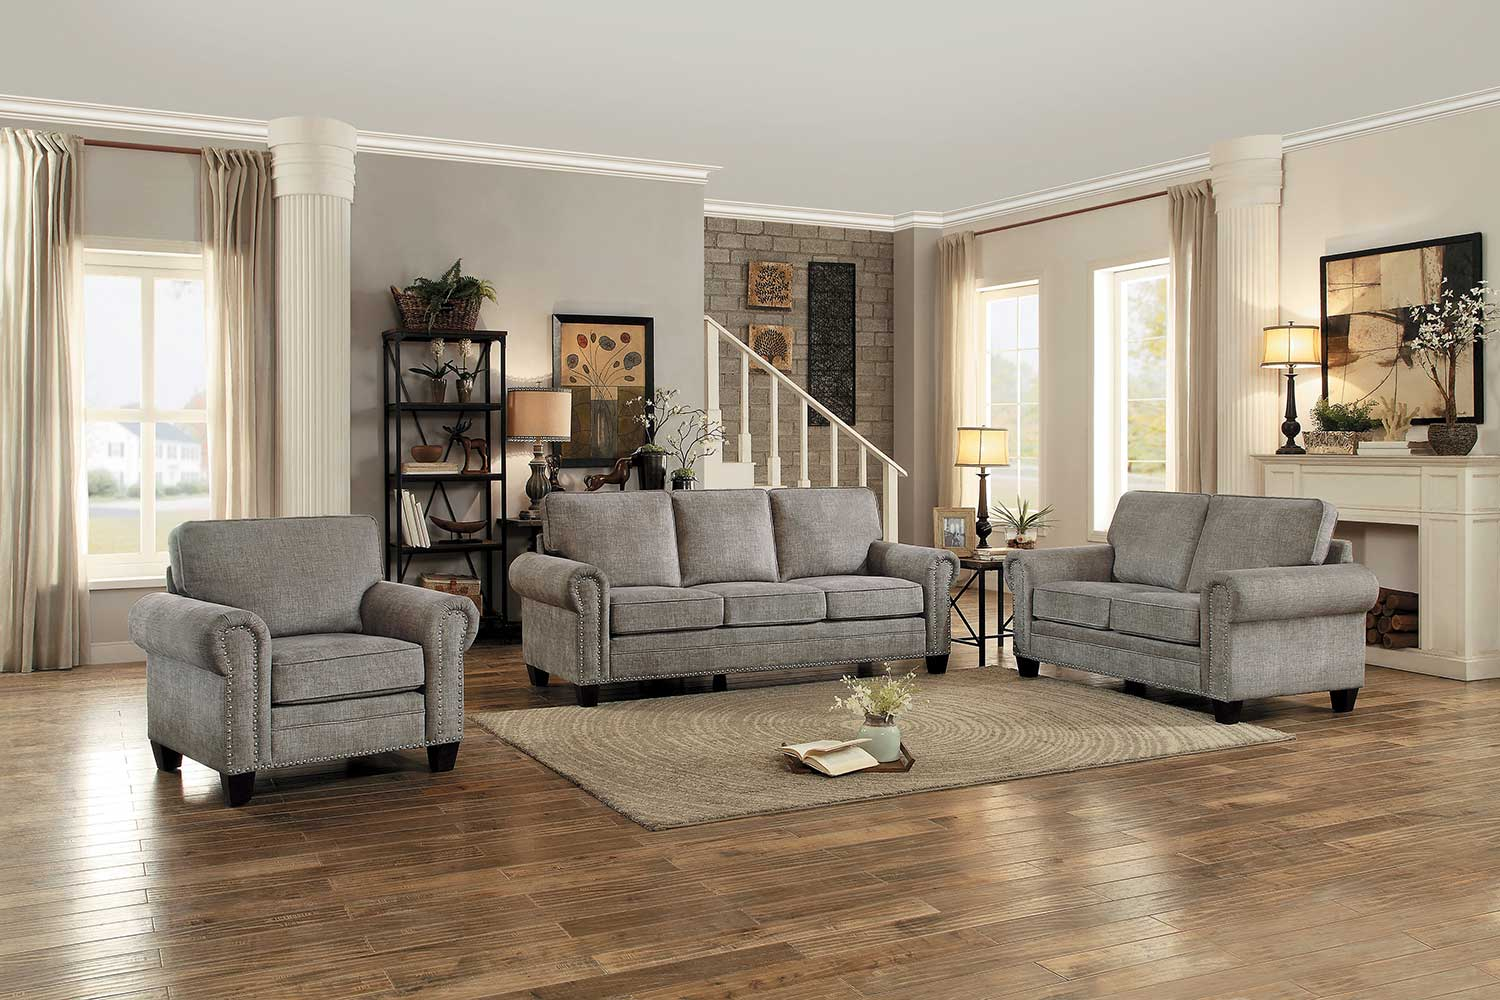 Homelegance Cornelia Sofa Set - Sand Fabric